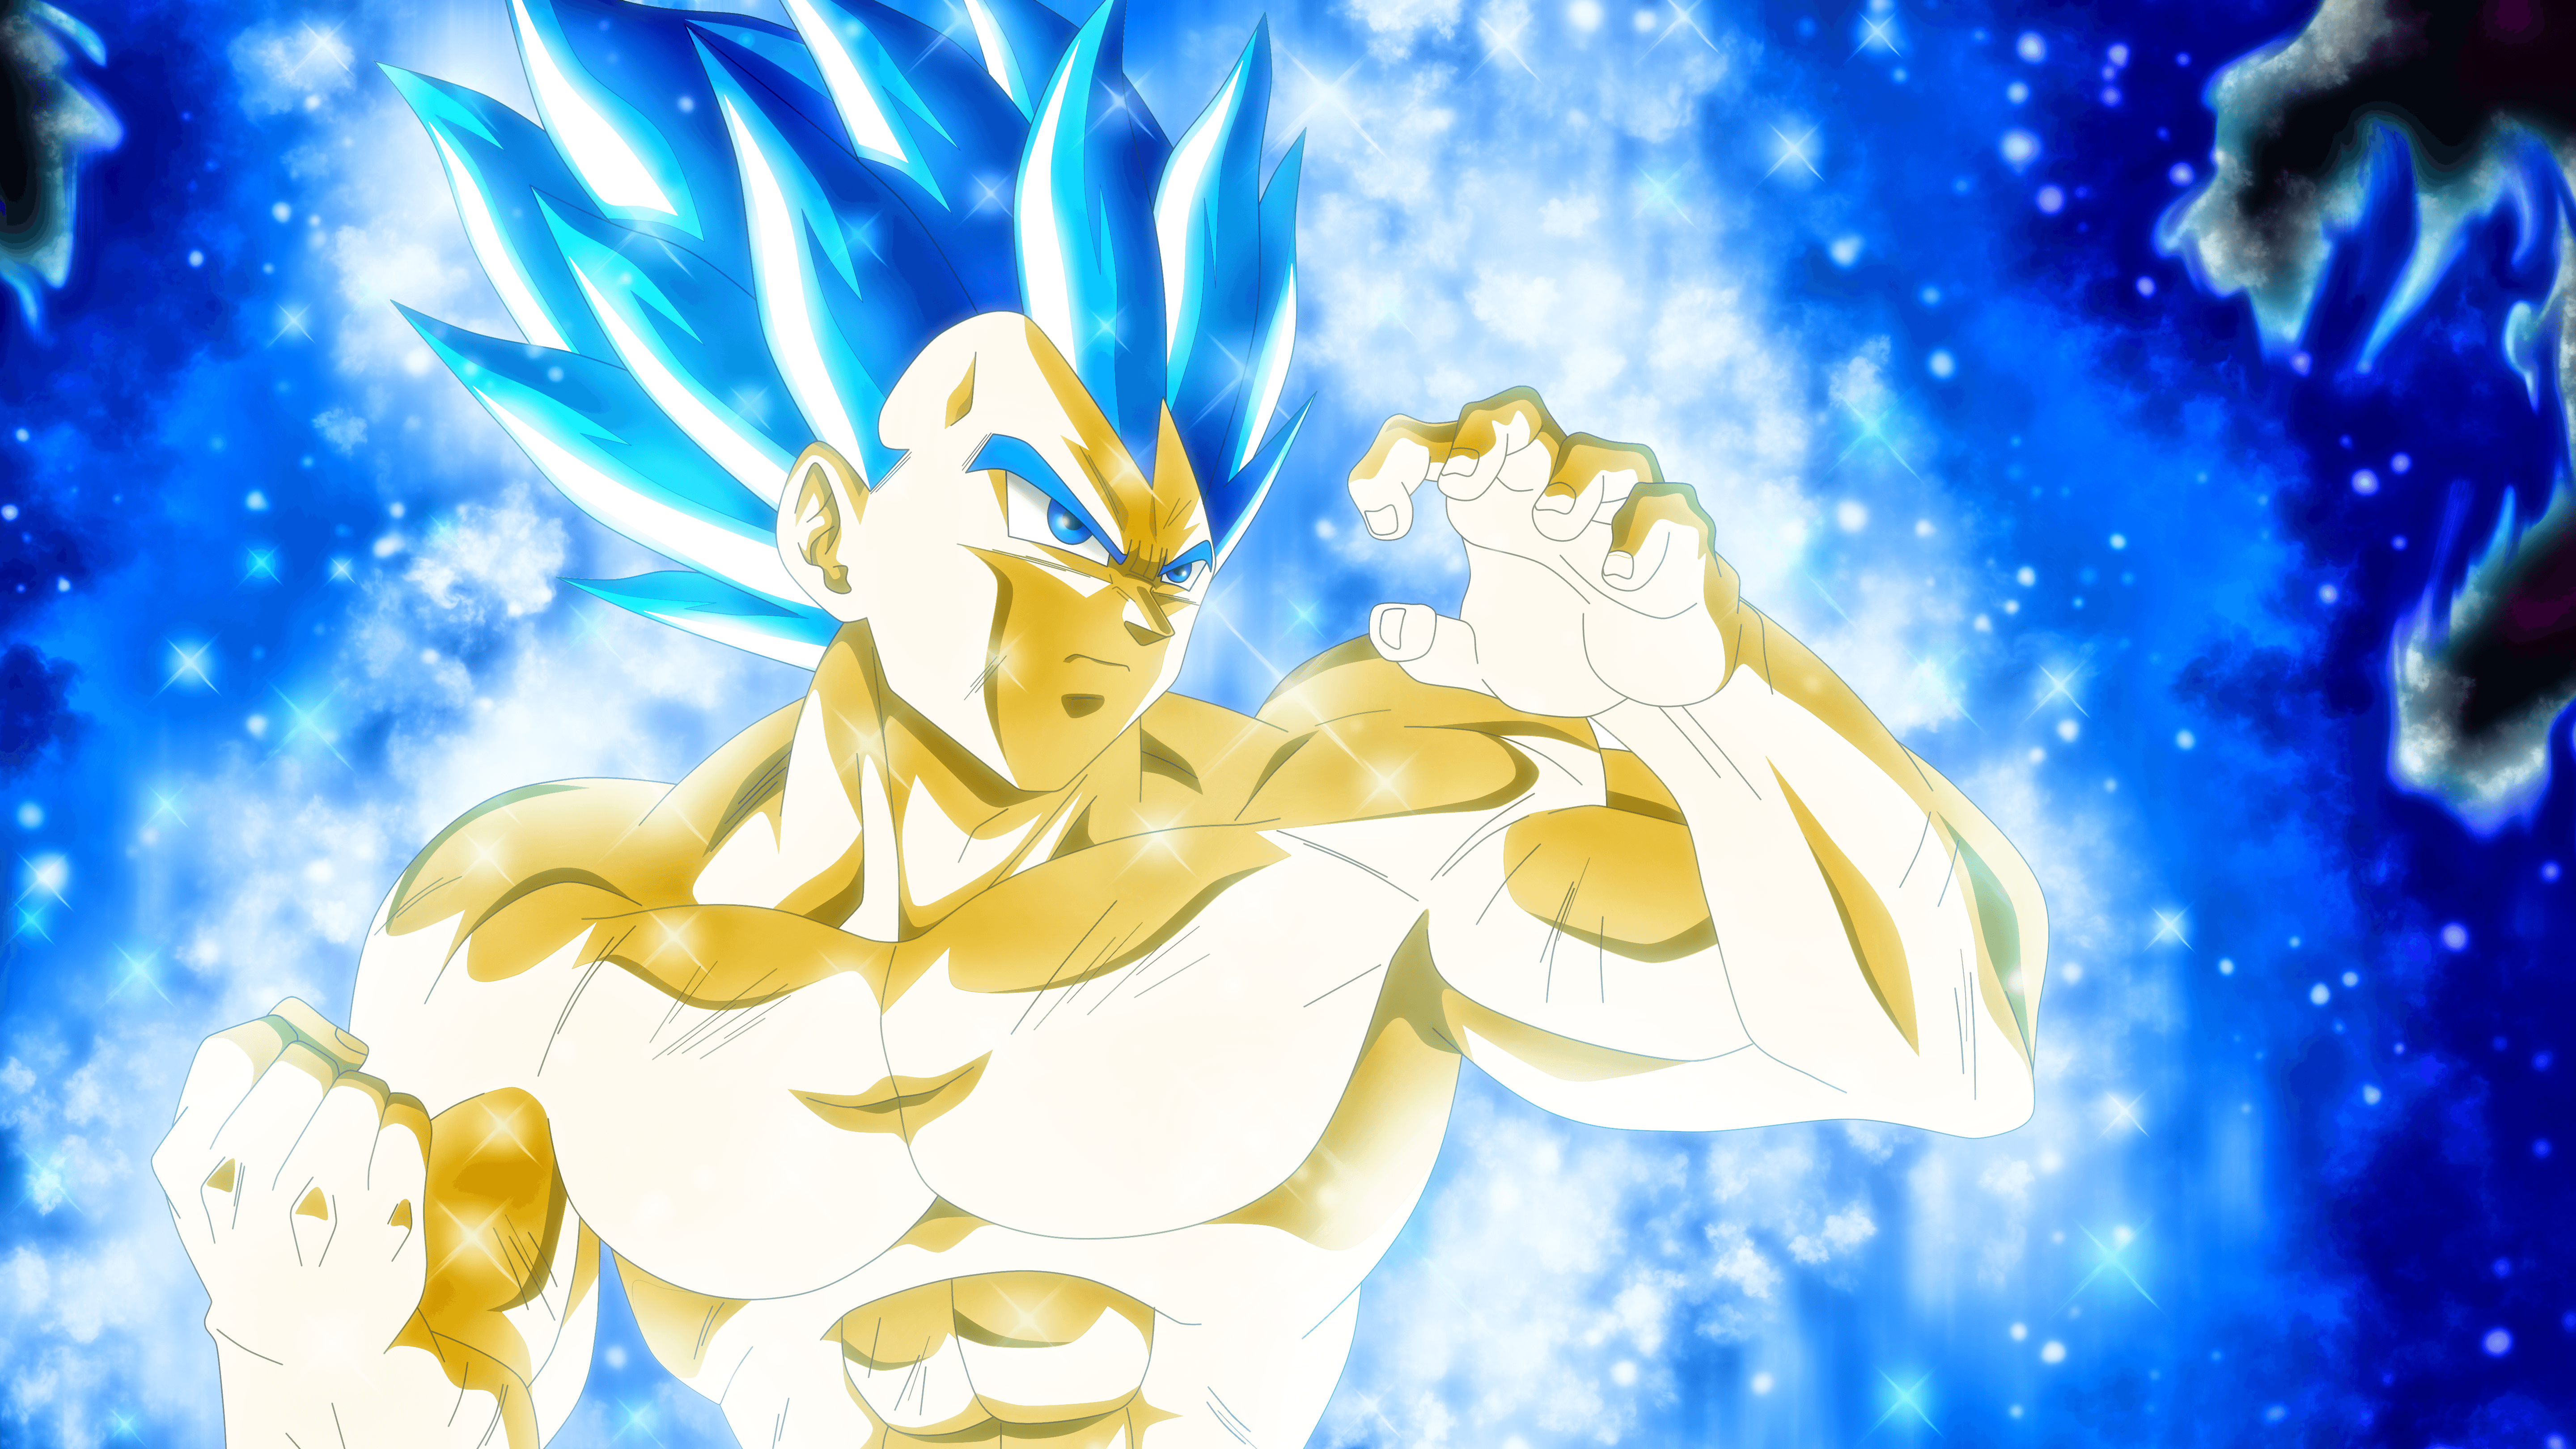 Vegeta New Form Wallpapers Top Free Vegeta New Form Backgrounds